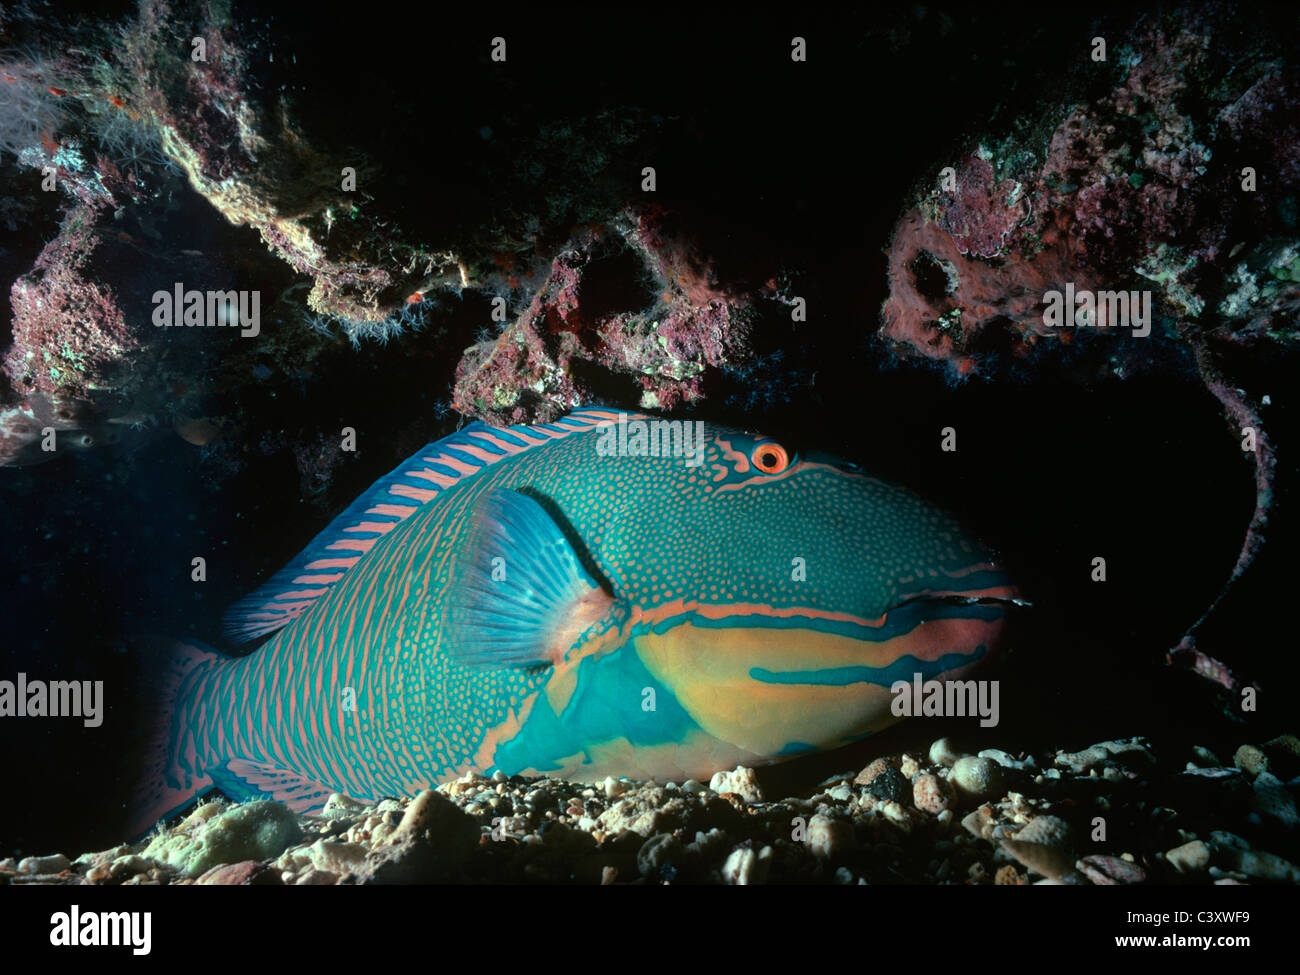 Bicolor Parrotfish (Cetoscarus bicolor) sleeping in coral cave at night . Egypt, Red Sea. Stock Photo